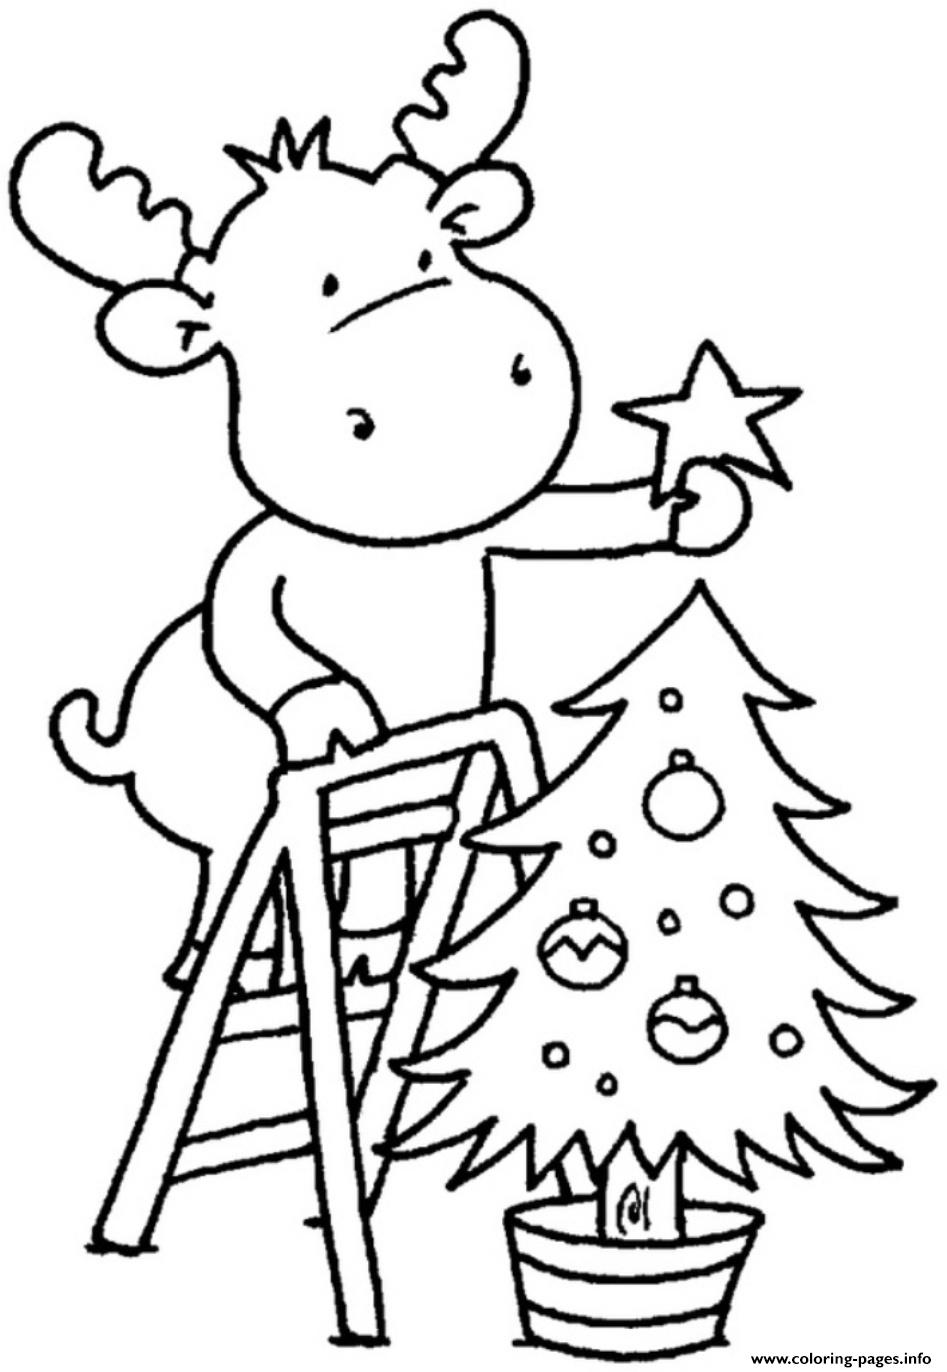 christmas coloring pages for preschoolers coloring pages christmas snowman coloring pages free and pages christmas preschoolers coloring for